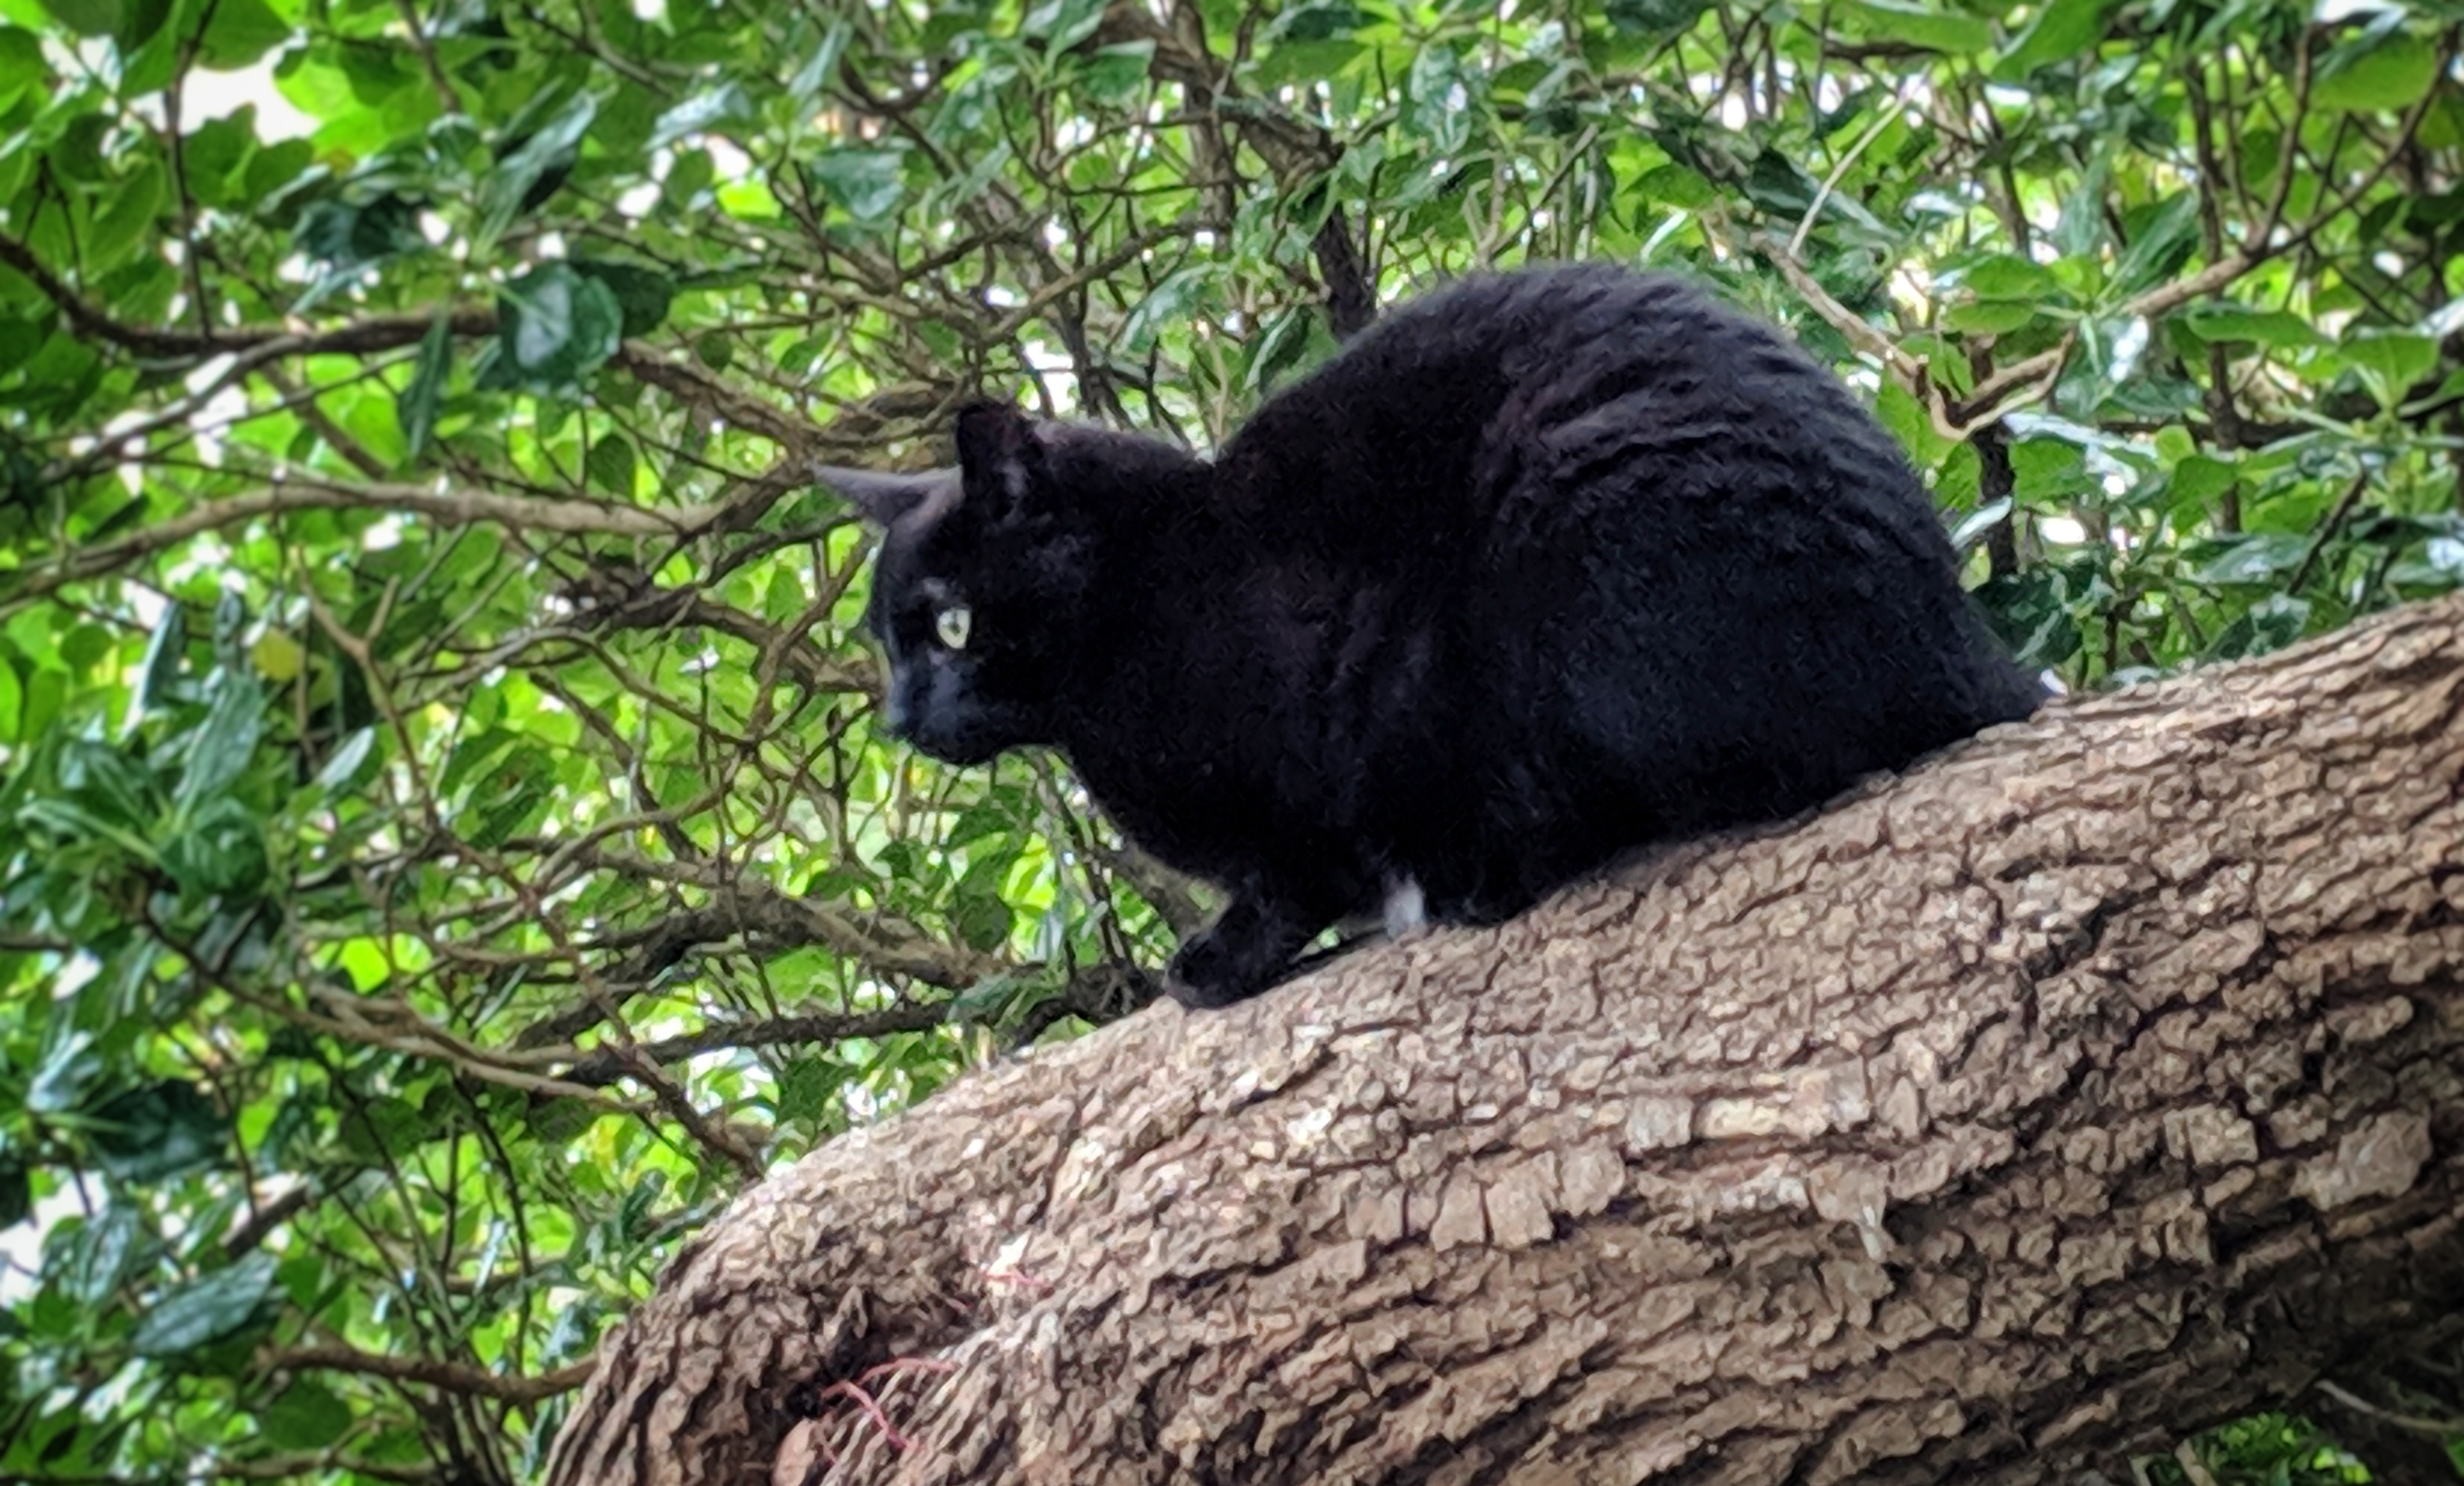 Inky, the cat, up a tree hunting